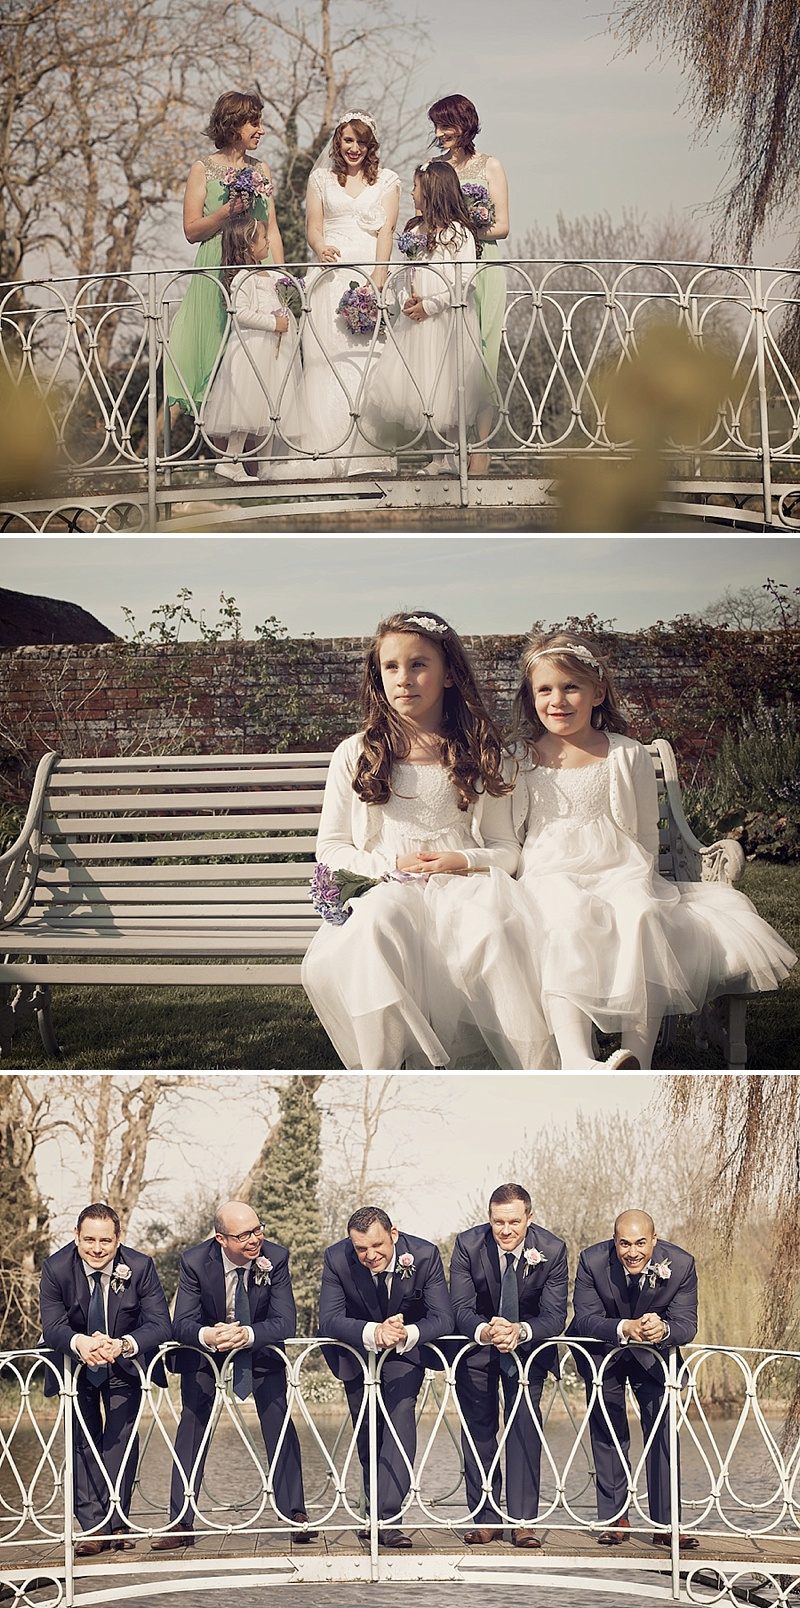 Vintage Wedding Inspired By The Carousel Scene From Mary Poppins With A Mint Green, Lavender And Gold Colour Scheme With Bride In Gala By Cymbeline With Rachel Simpson Shoes 6